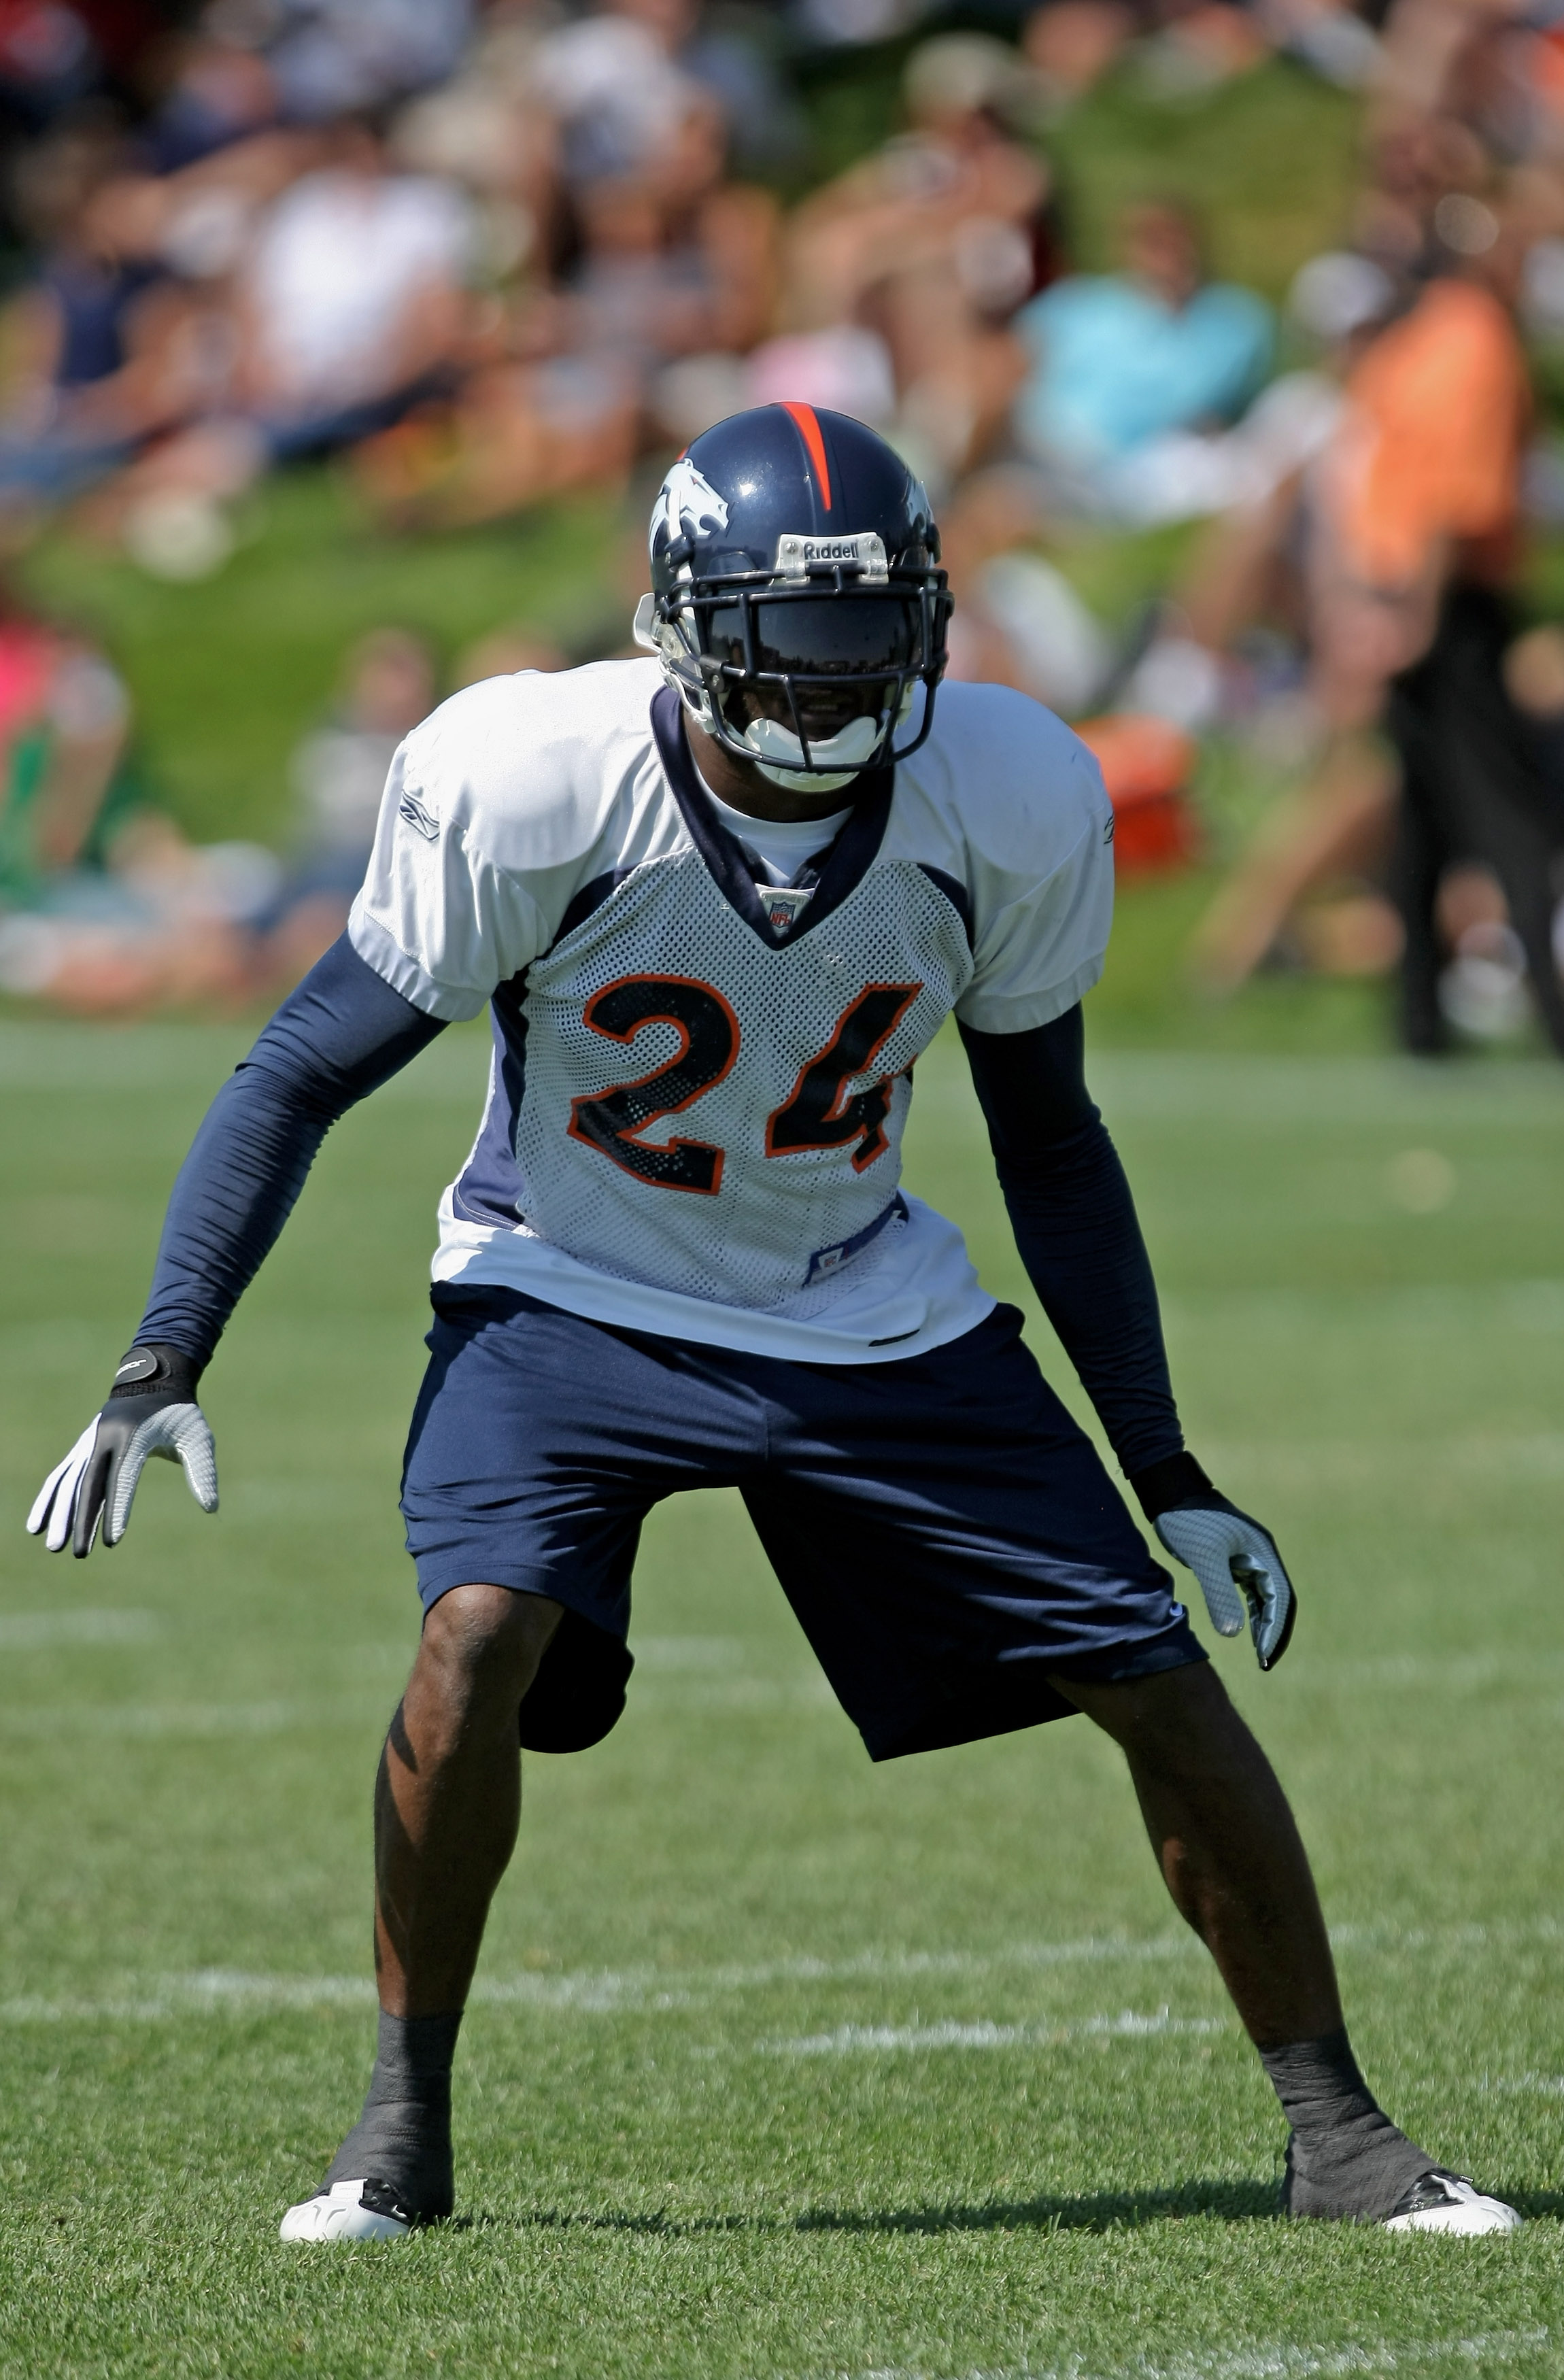 ENGLEWOOD, CO - JULY 29:  Cornerback Champ Bailey #24 of the Denver Broncos participates in the morning session during training camp at the Bronco facility July 29, 2008 in Englewood, Colorado.  (Photo by Doug Pensinger/Getty Images)